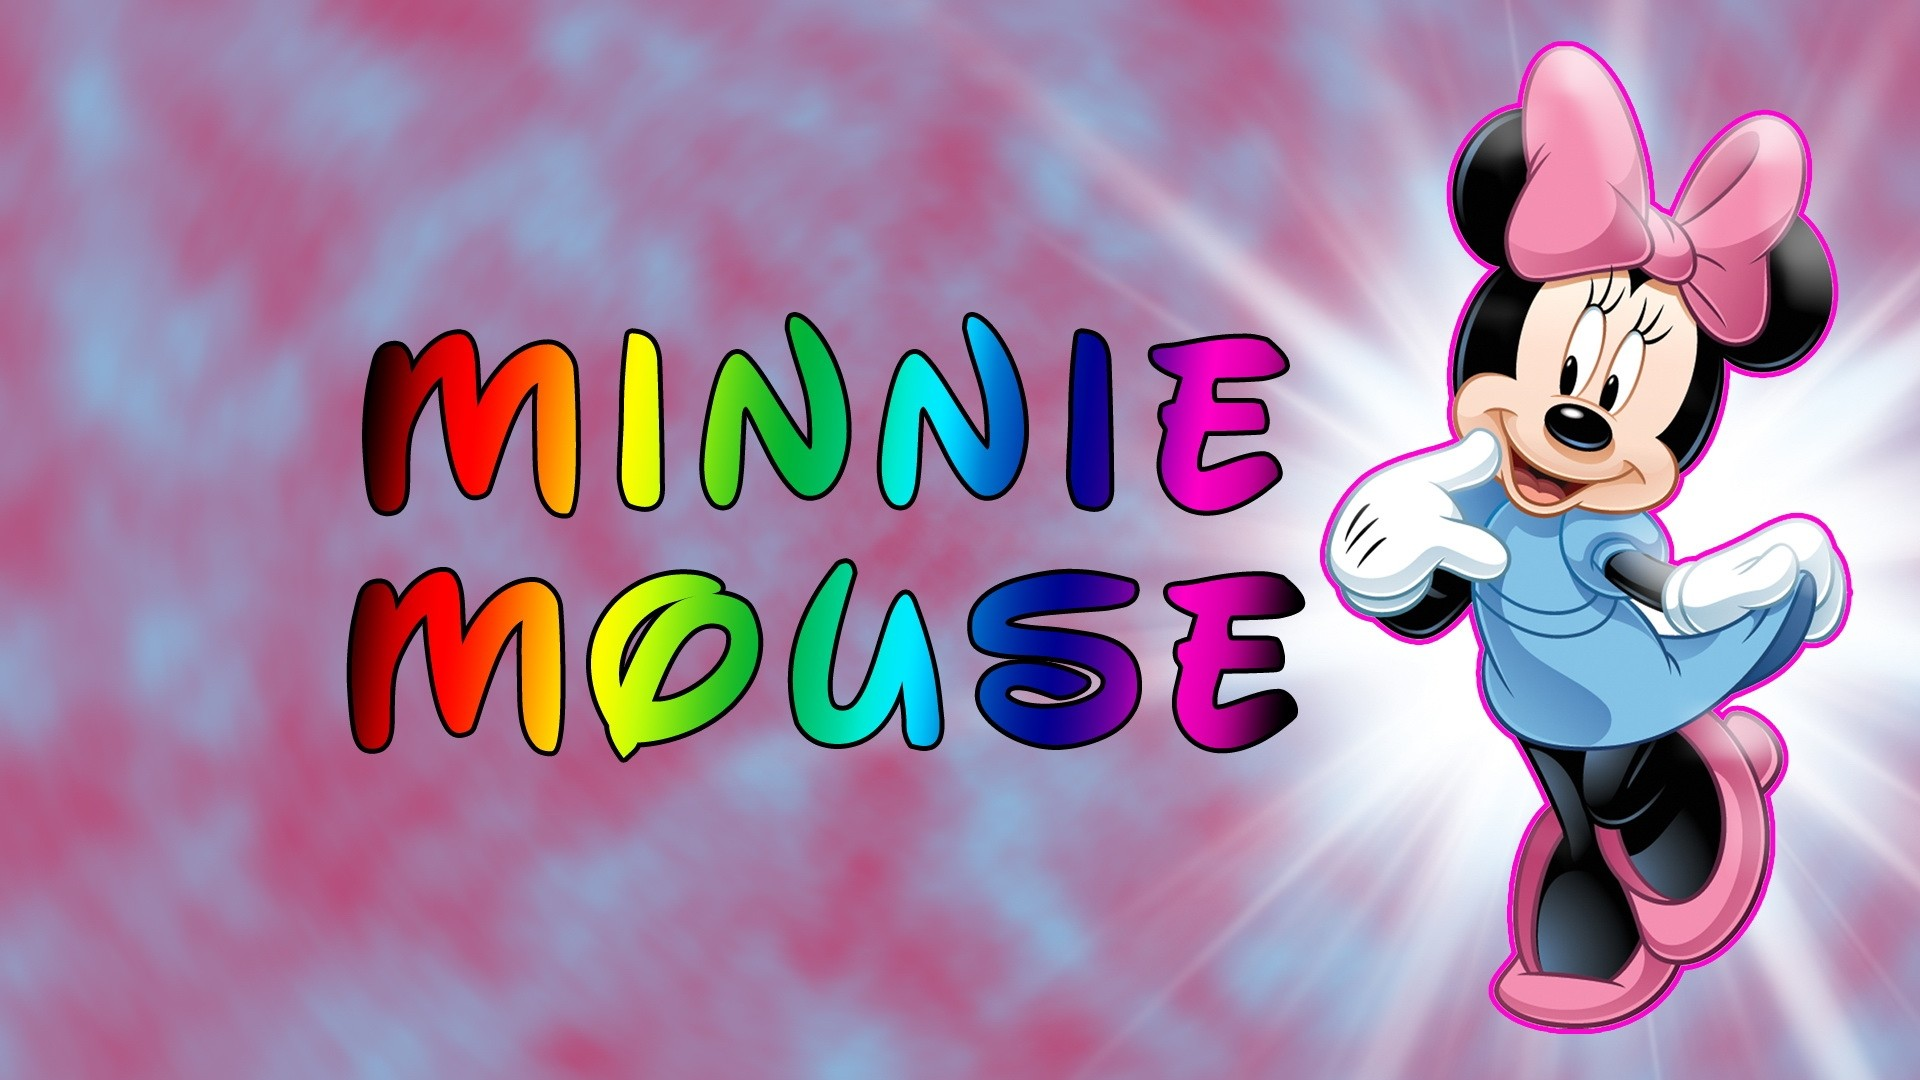 Minnie Mouse High Quality